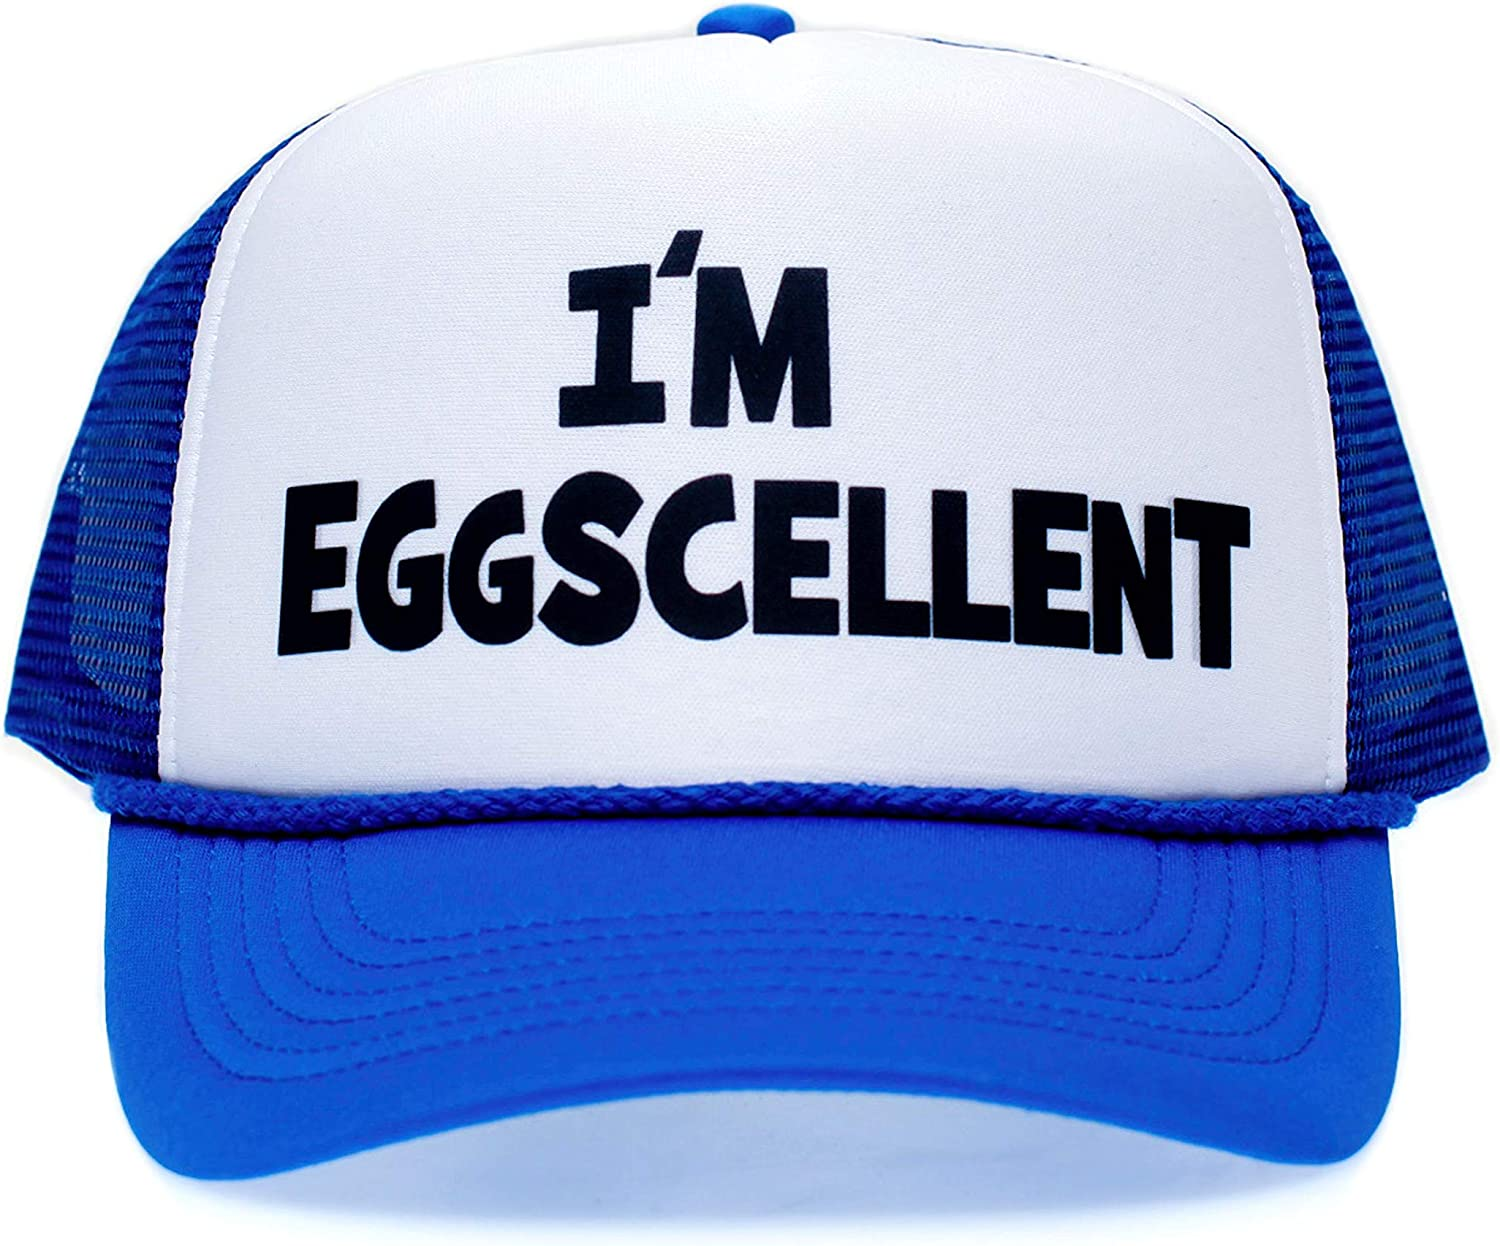 One-Size Royal//White Im Eggscellent Unisex-Adult Trucker Hat